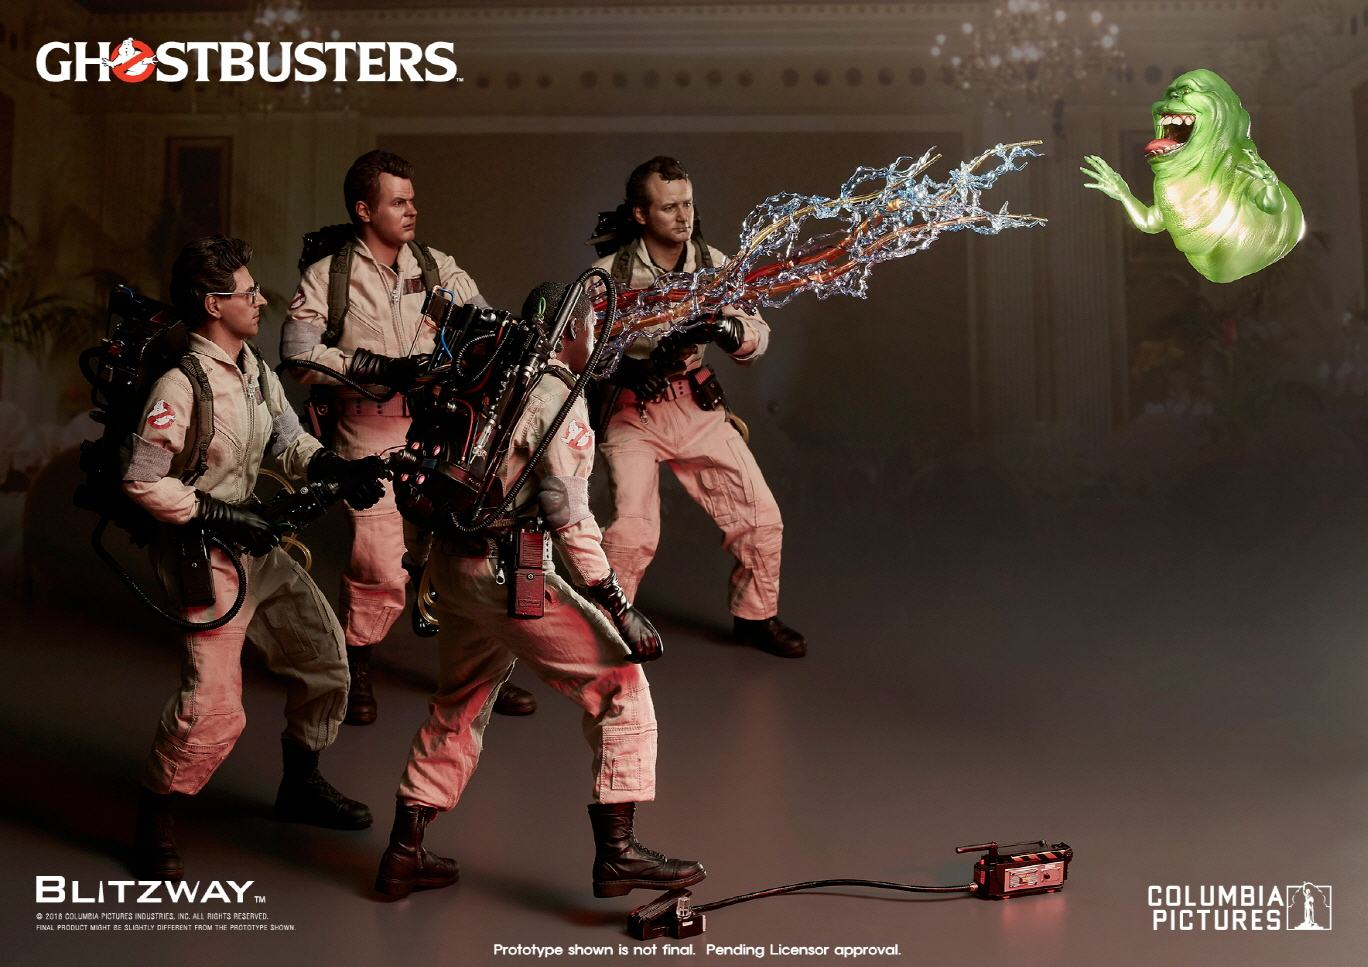 Ghostbusters-Action-Figures-Escala-1-6-Bitzway-03